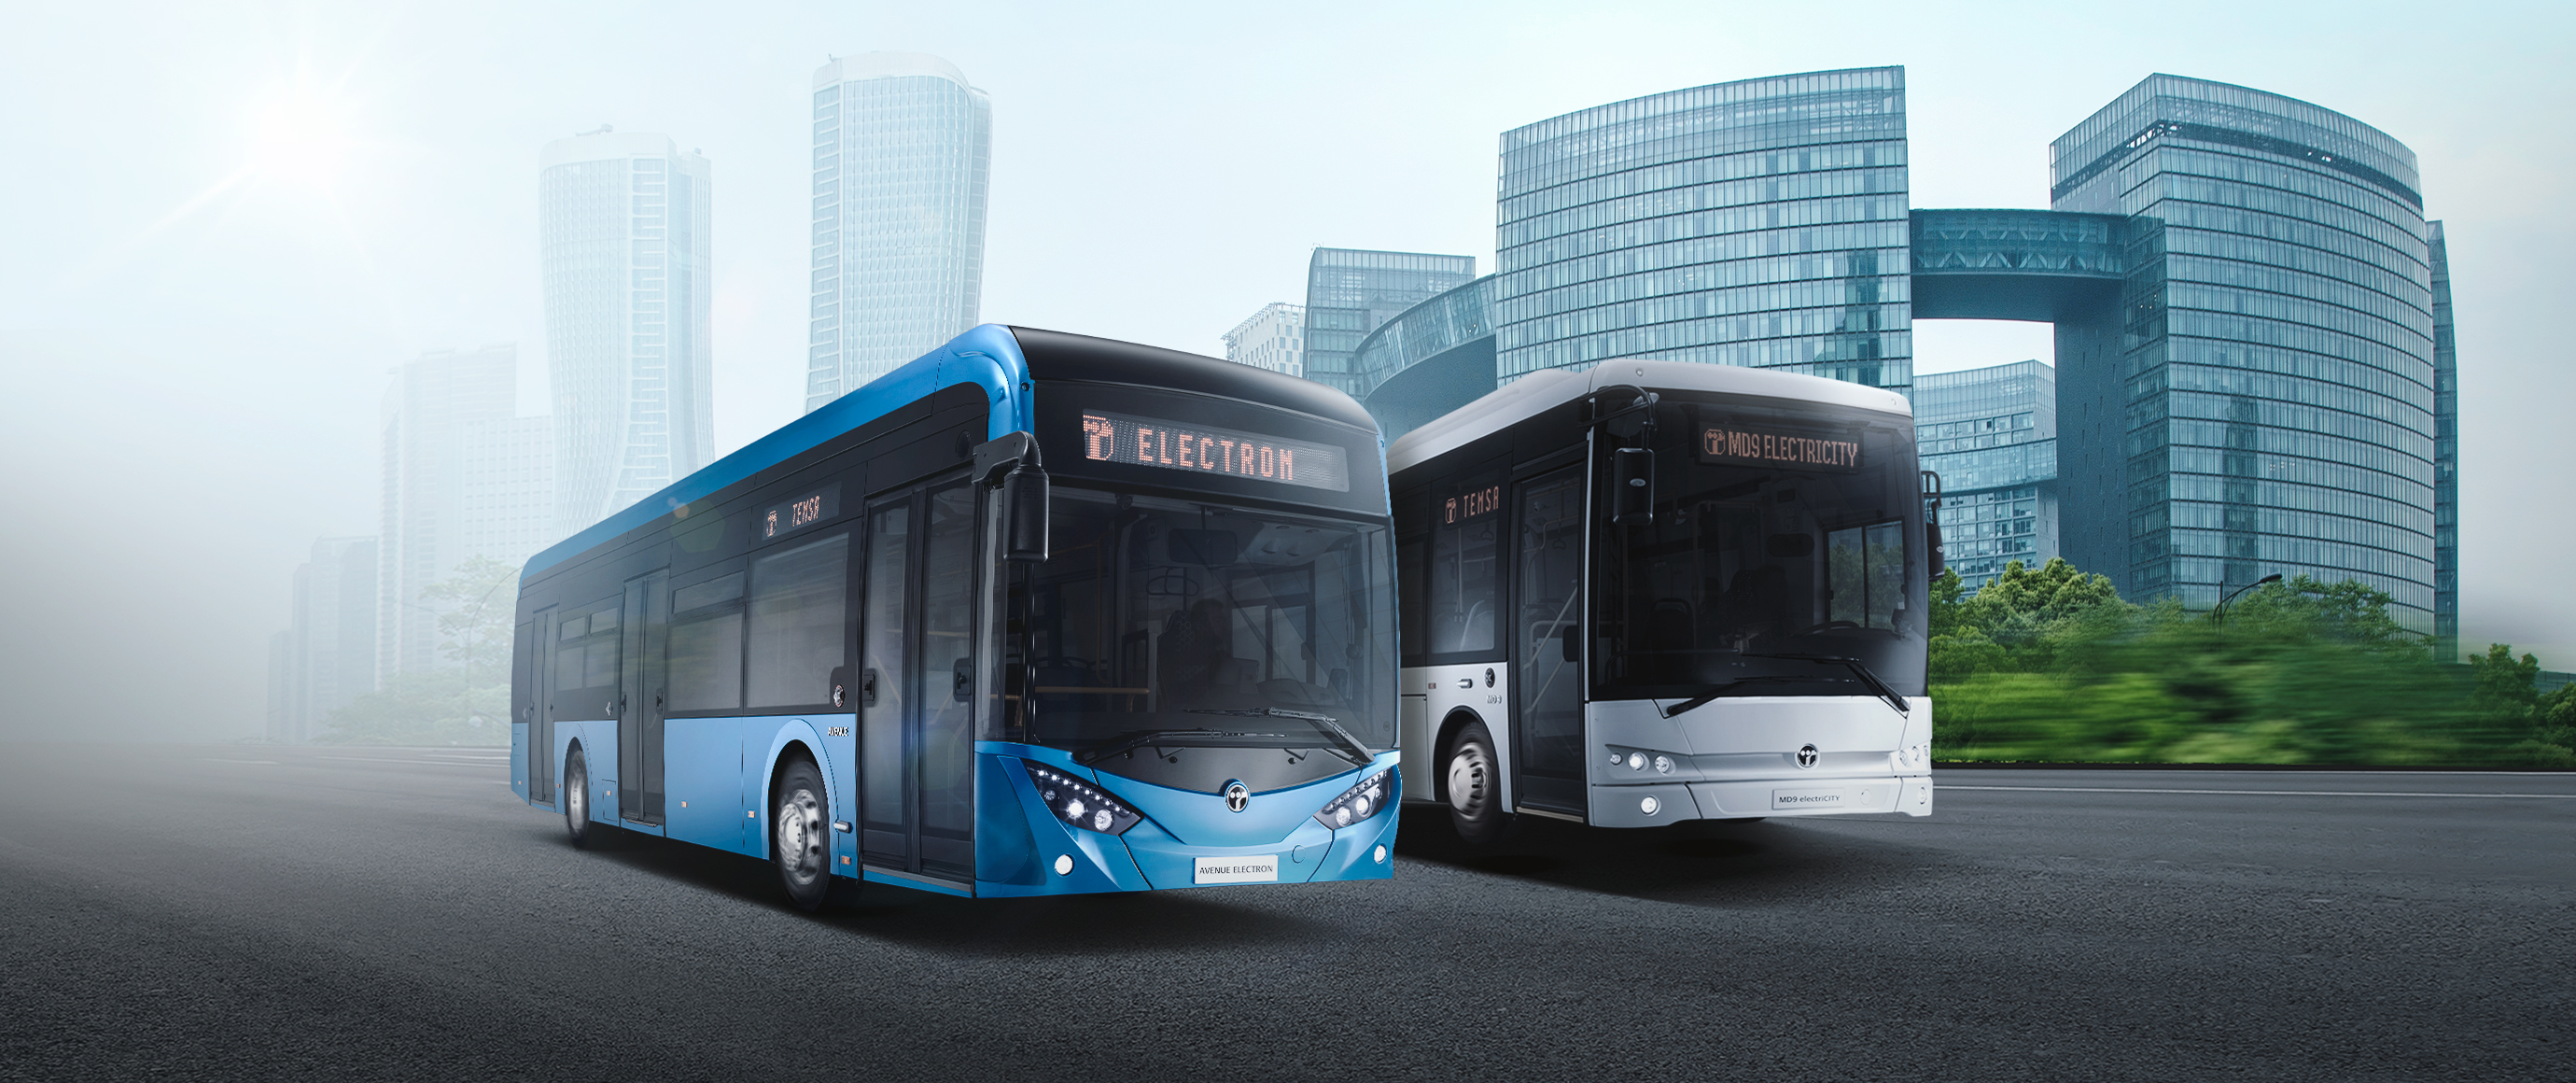 TEMSA to participate in the IAA Mobility Fair, with its two electric buses and battery pack!